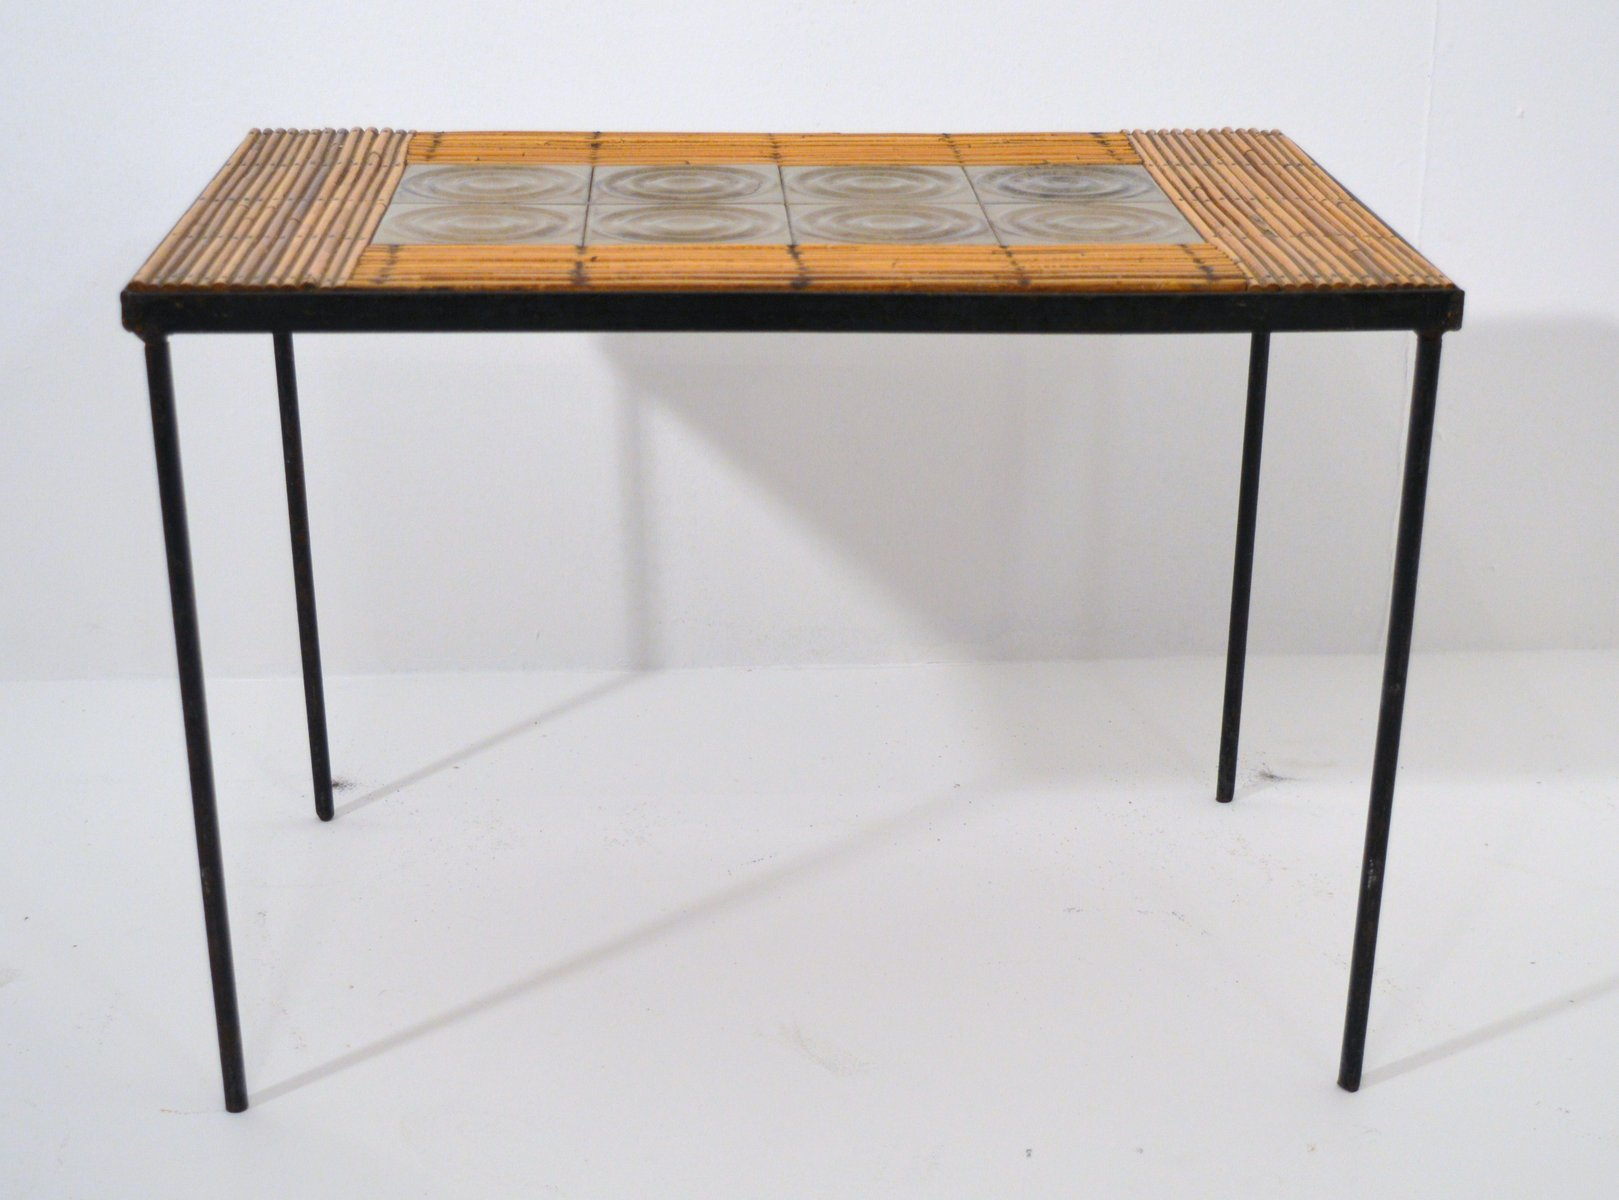 Vintage French Coffee Table 1950s for sale at Pamono